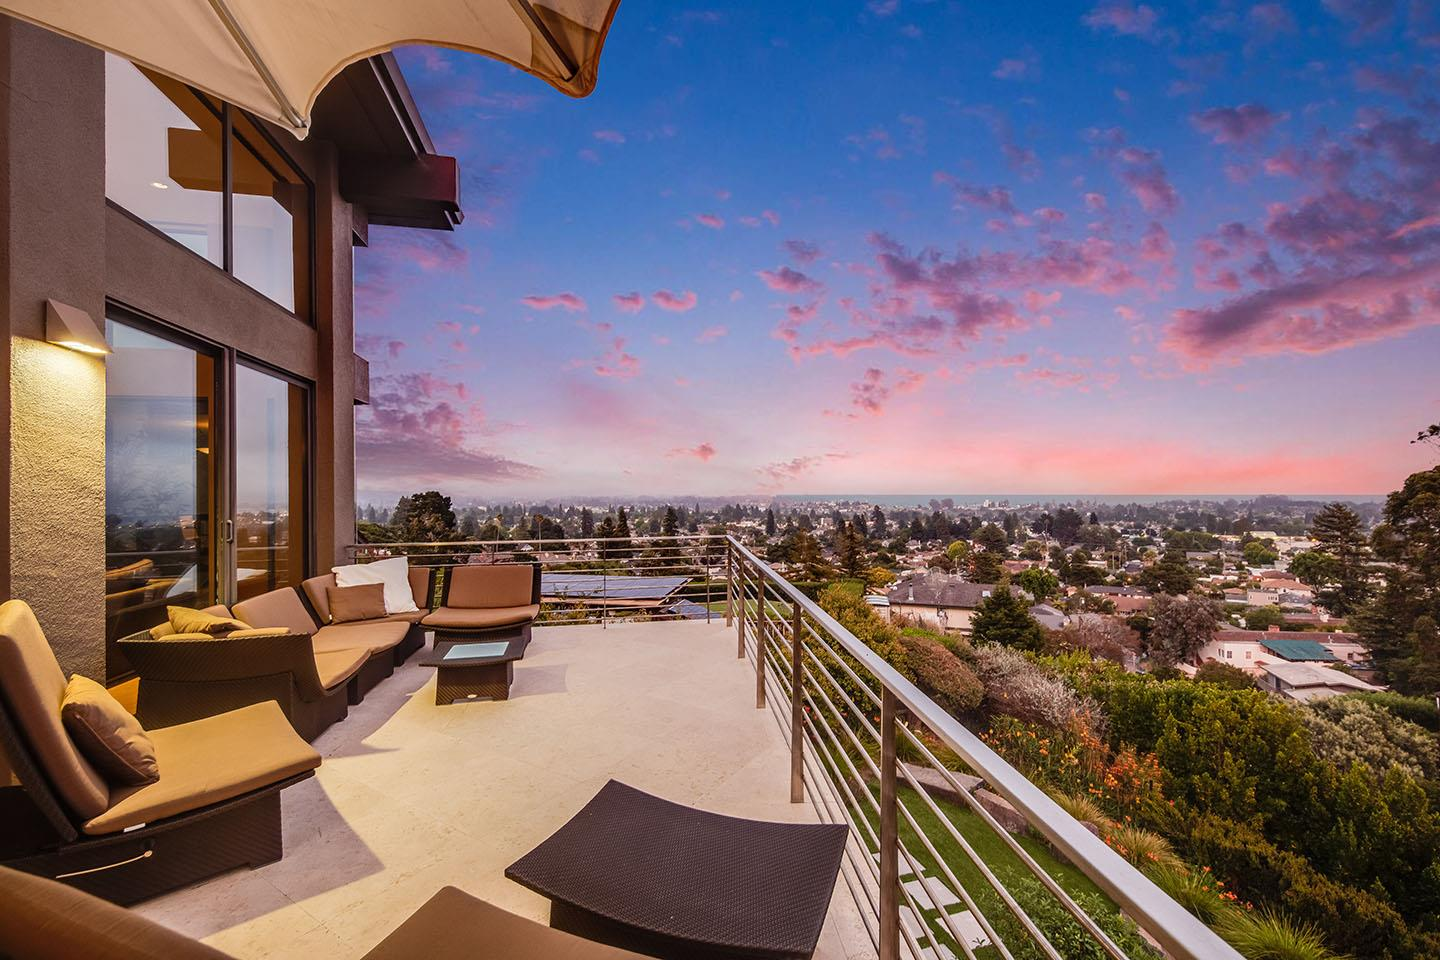 This magnificent, one-of-a-kind, custom masterpiece was built in 2007 and has been impeccably maintained in pristine condition. Renowned architects, Gary Garmann + Thatcher Thompson, designed this awe-inspiring abode. Builder, John Badeaux, added a level of quality rarely seen in construction today. This ridge top oasis in the sought after upper West Side is set back from the street, hidden in a private enclave which makes it a rare offering. This spectacular home with sweeping views of the bay and city lights is truly impressive & perfect for entertaining.  The many private spaces are ideal for tranquil & comfortable living. Some of the many remarkable features include, but are not limited to, a cherrywood elevator, limestone floors throughout much of the home, walls of windows showcasing breathtaking views, high ceilings, 9' solid wood doors, top of the line kitchen amenities, a huge pantry, radiant heat and much more. See the home brochure for a complete list of special features.